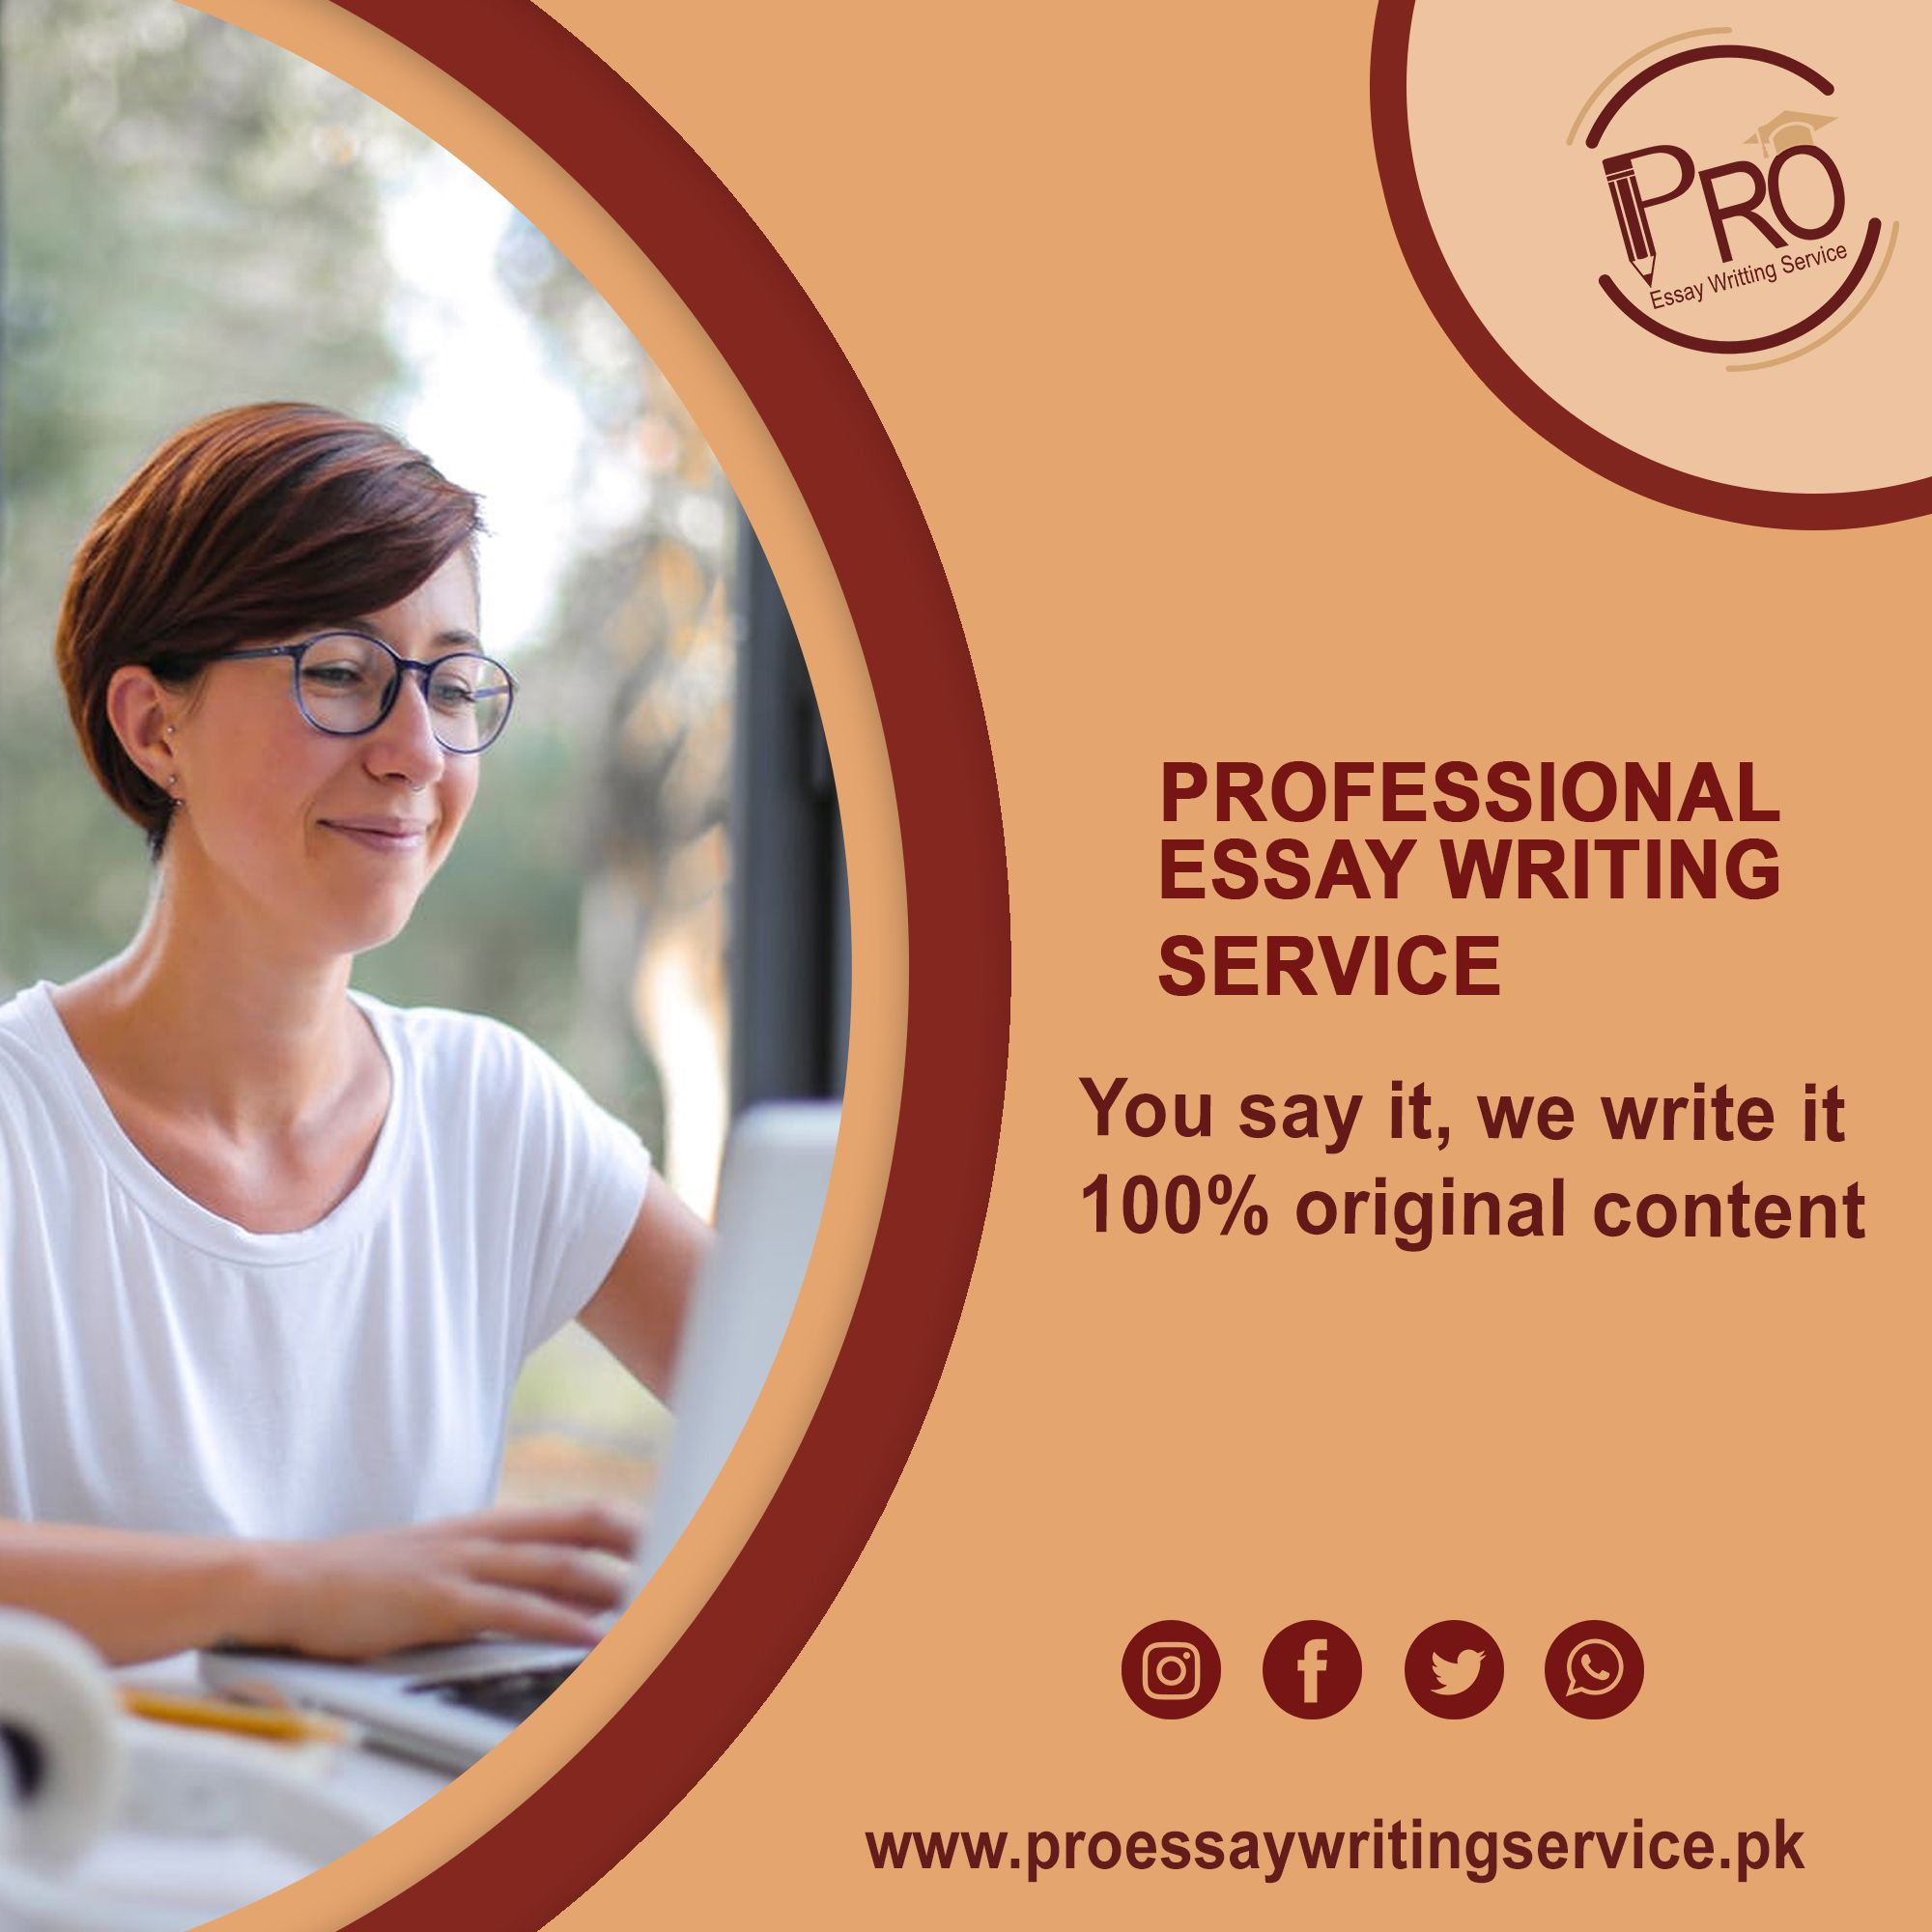 Online will writing services any good